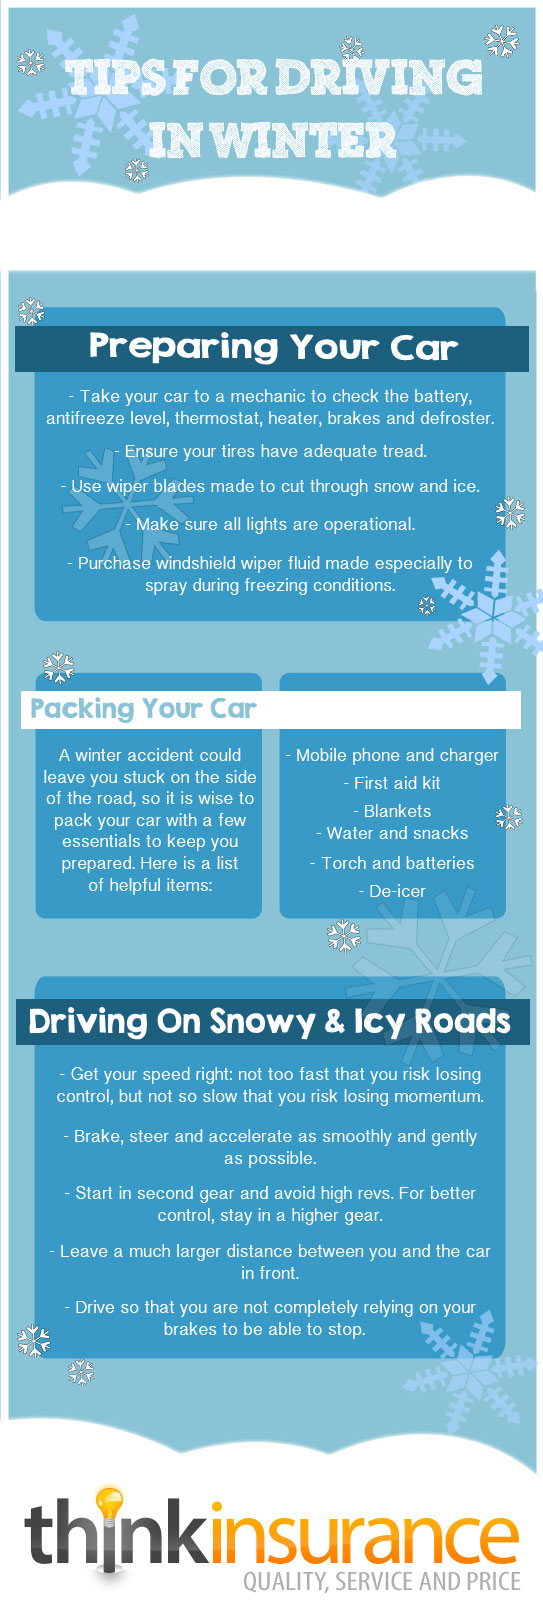 Tips-for-Winter-Driving-Infographic